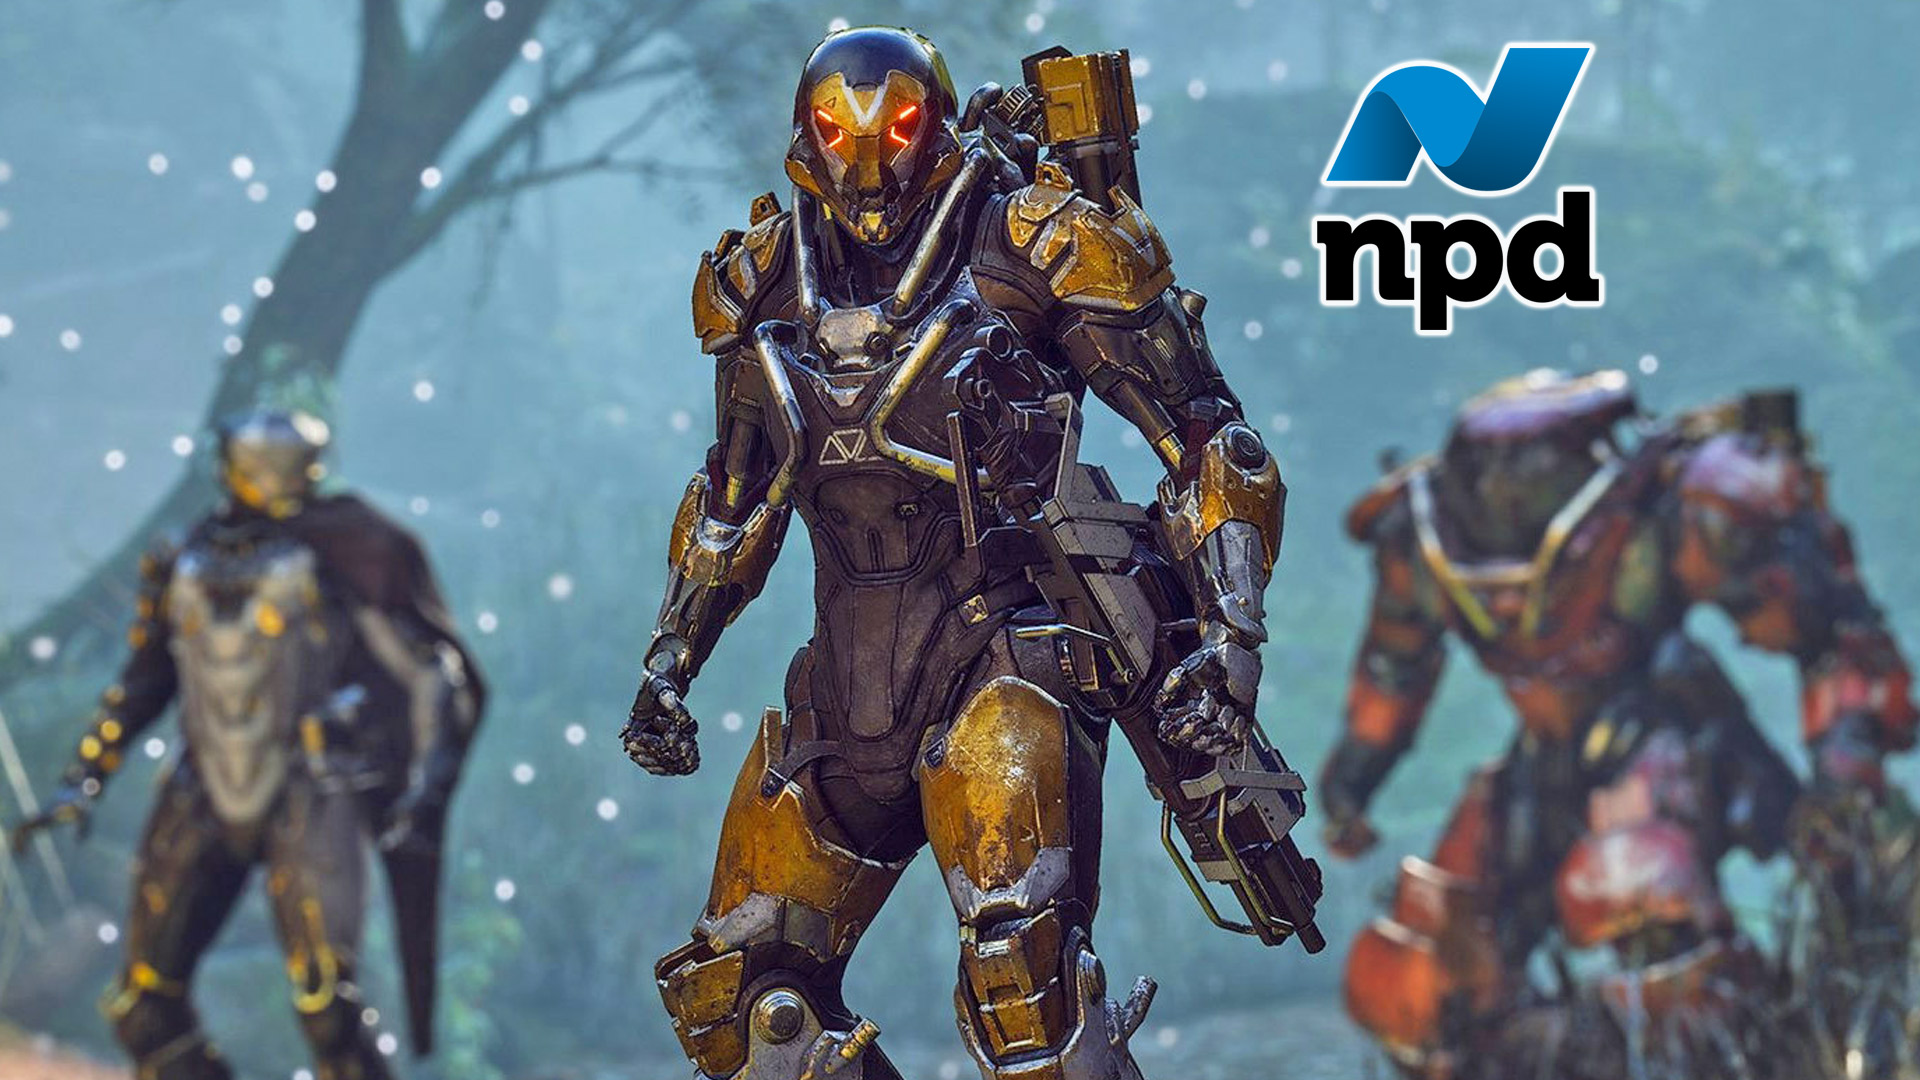 NPD February 2019 Gaming Estimates and Analysis: Anthem Rises